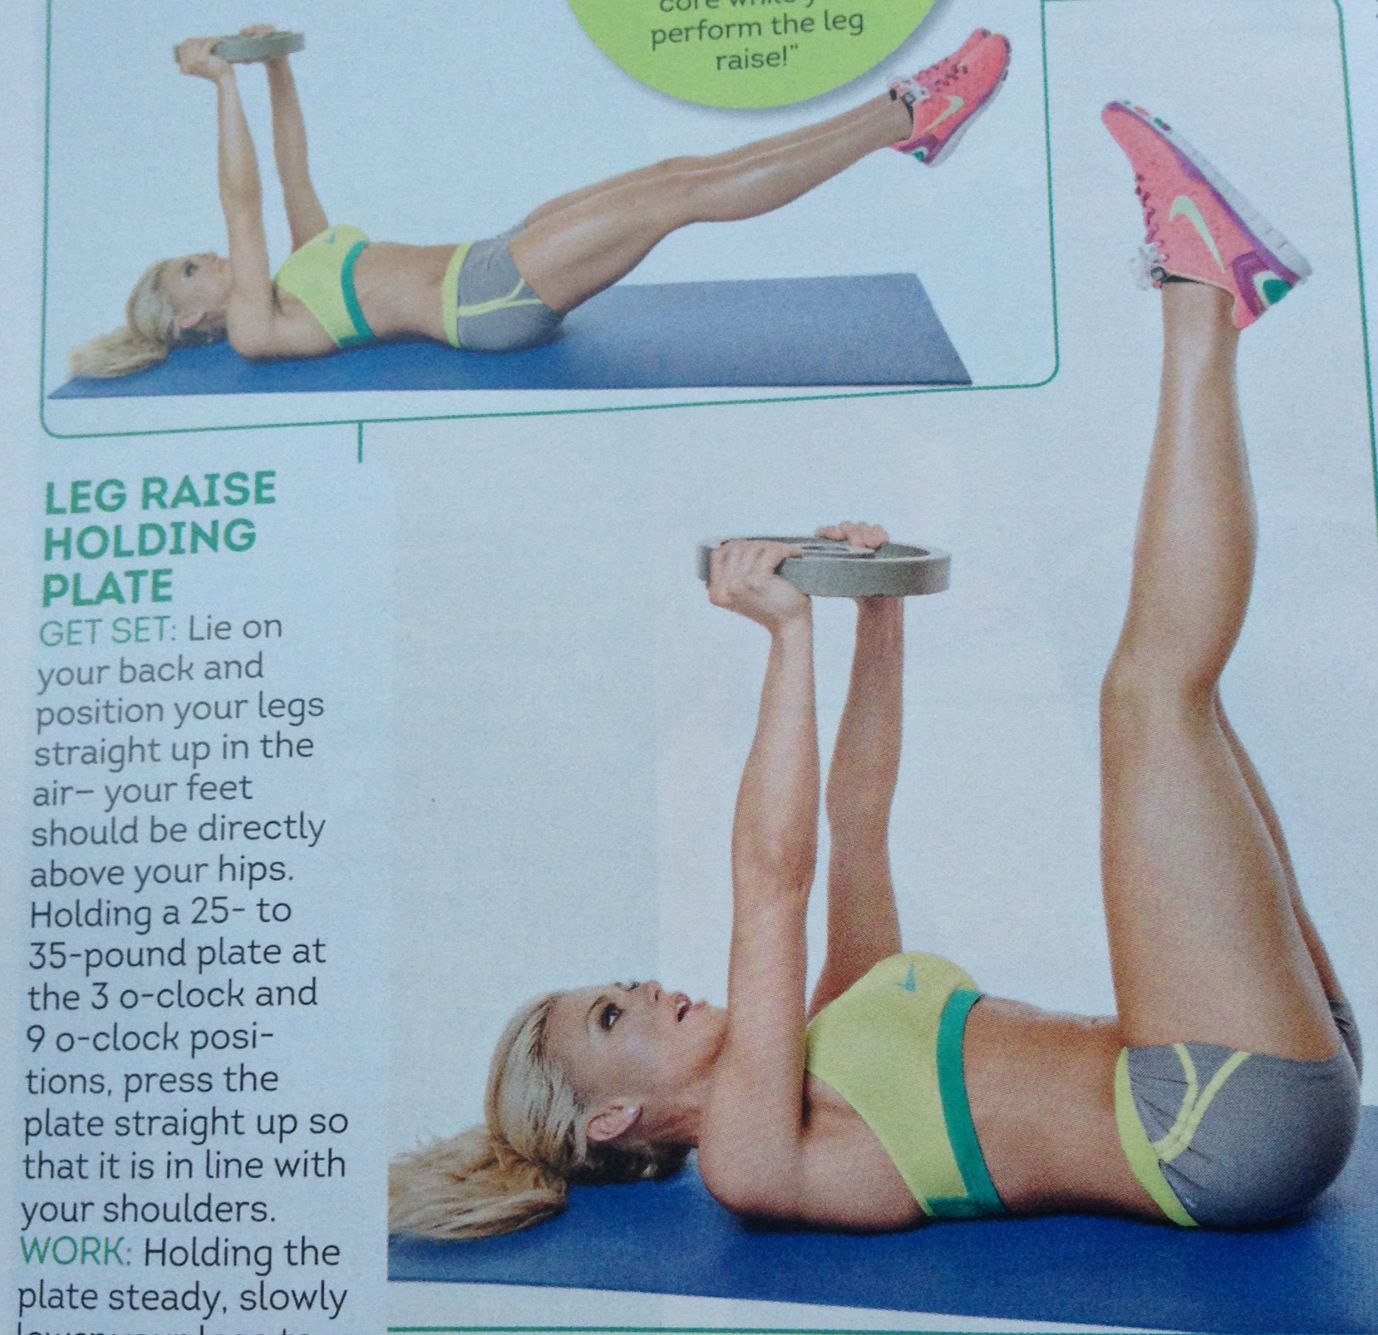 Working the core